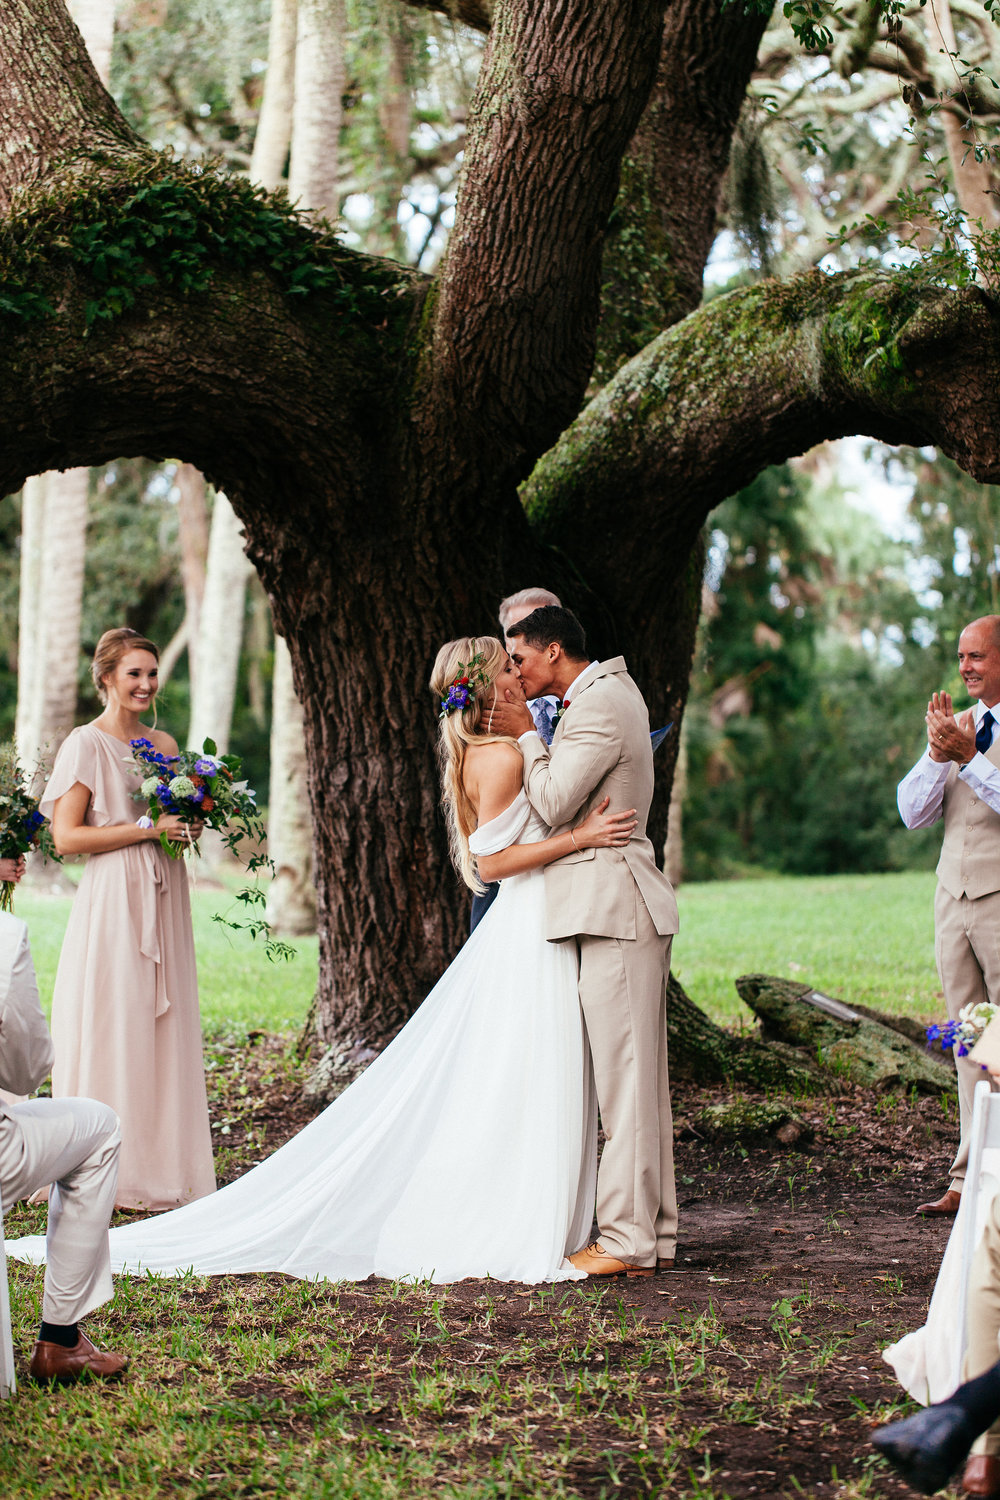 christina-karst-photography-ivory-and-beau-bridal-boutique-sarah-seven-lafayette-boho-bride-boho-bridal-boutique-indie-bridal-boutique-savannah-bridal-boutique-savannah-wedding-dresses-savannah-bridal-gowns-15.jpg